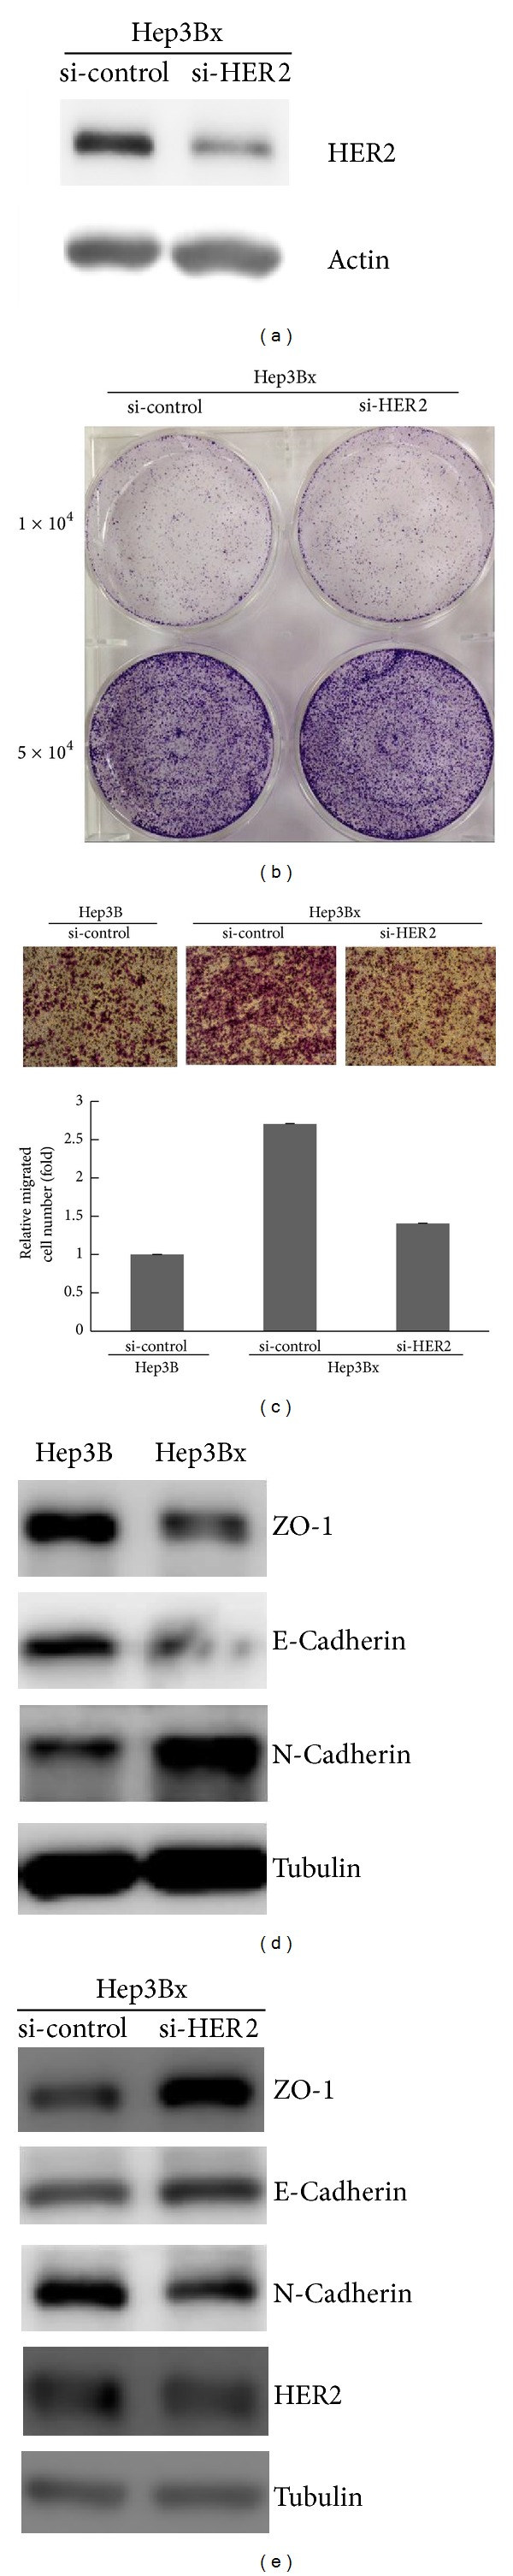 The increased HER2 protein expression was responsible for the migration ability of HBx-expressing HCC cells. ((a), (b), (c), and (e)) Hep3Bx cells were transiently transfected with either si-control or si-HER2 for 4 days. Then, cells were either harvested or reseeded for further experiments. Gene silence of HER2 expression was confirmed by Western blot (a) ( N = 3). The relative growth rate was determined by crystal violet staining (b) ( N = 3). The migration of Hep3Bx cells was examined by Transwell migration assay for 48 hrs. The representative pictures of migrated cells were visualized and quantified (c) ( N = 3). The expressions of metastatic factors were examined by Western blot (e) ( N = 3). (d) The expressions of metastatic factors in both Hep3B and Hep3Bx cells were examined by Western blot ( N = 3).